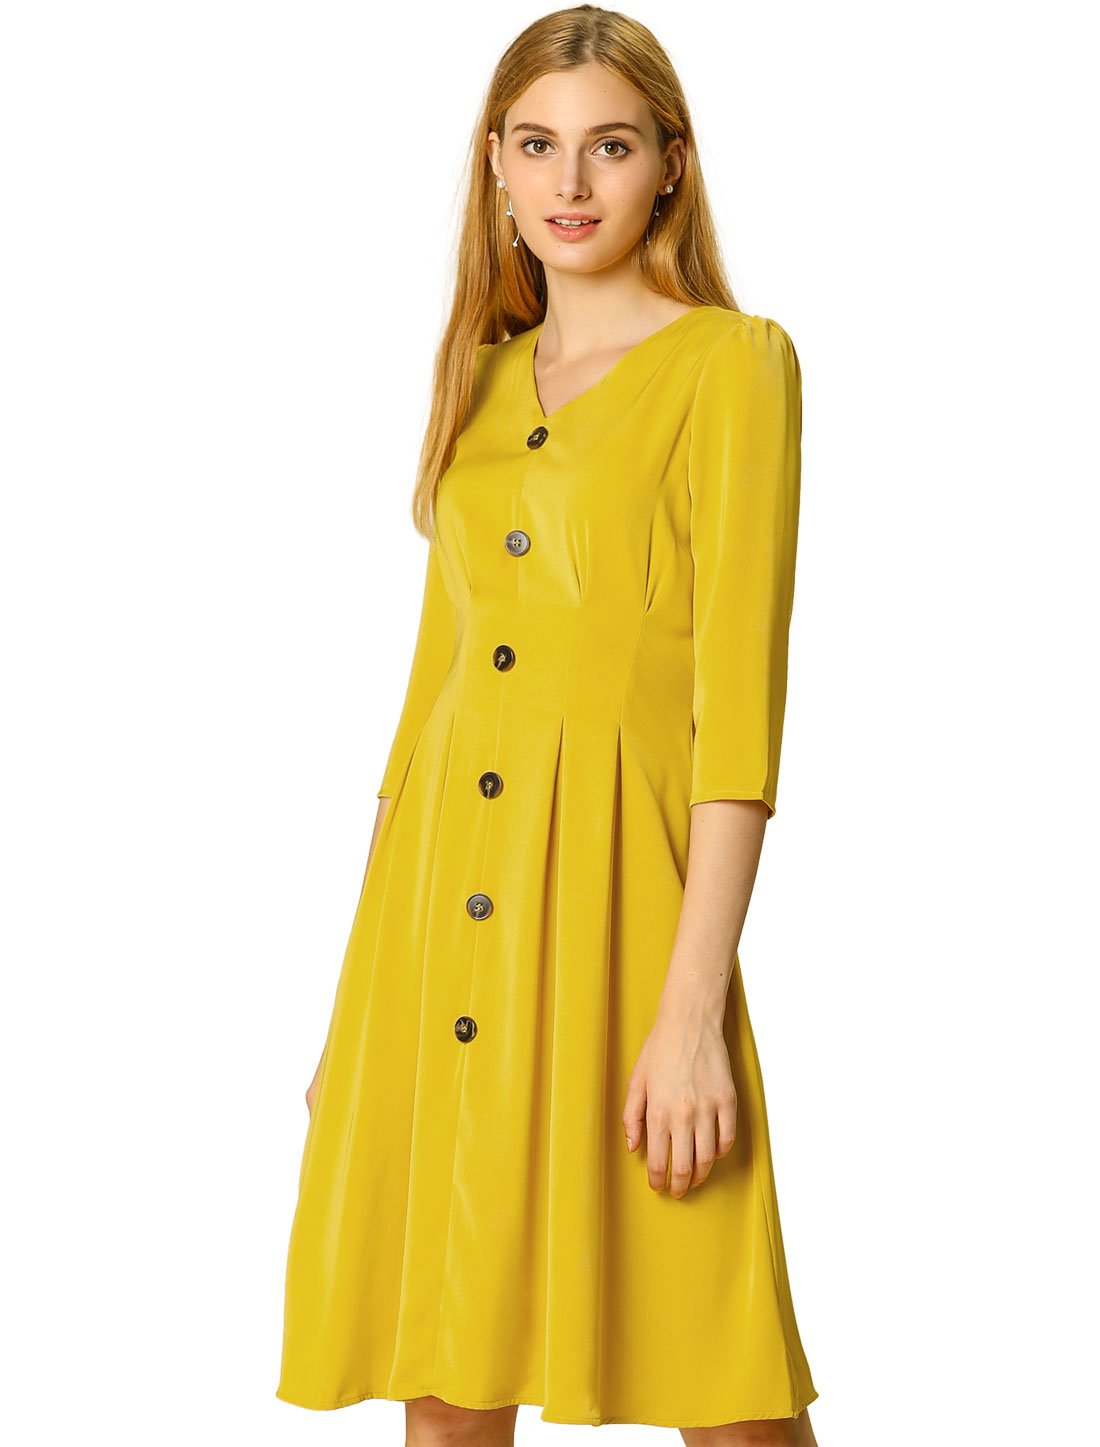 Allegra K Women's V Neck Belted Pleated A-line Dress Yellow XL